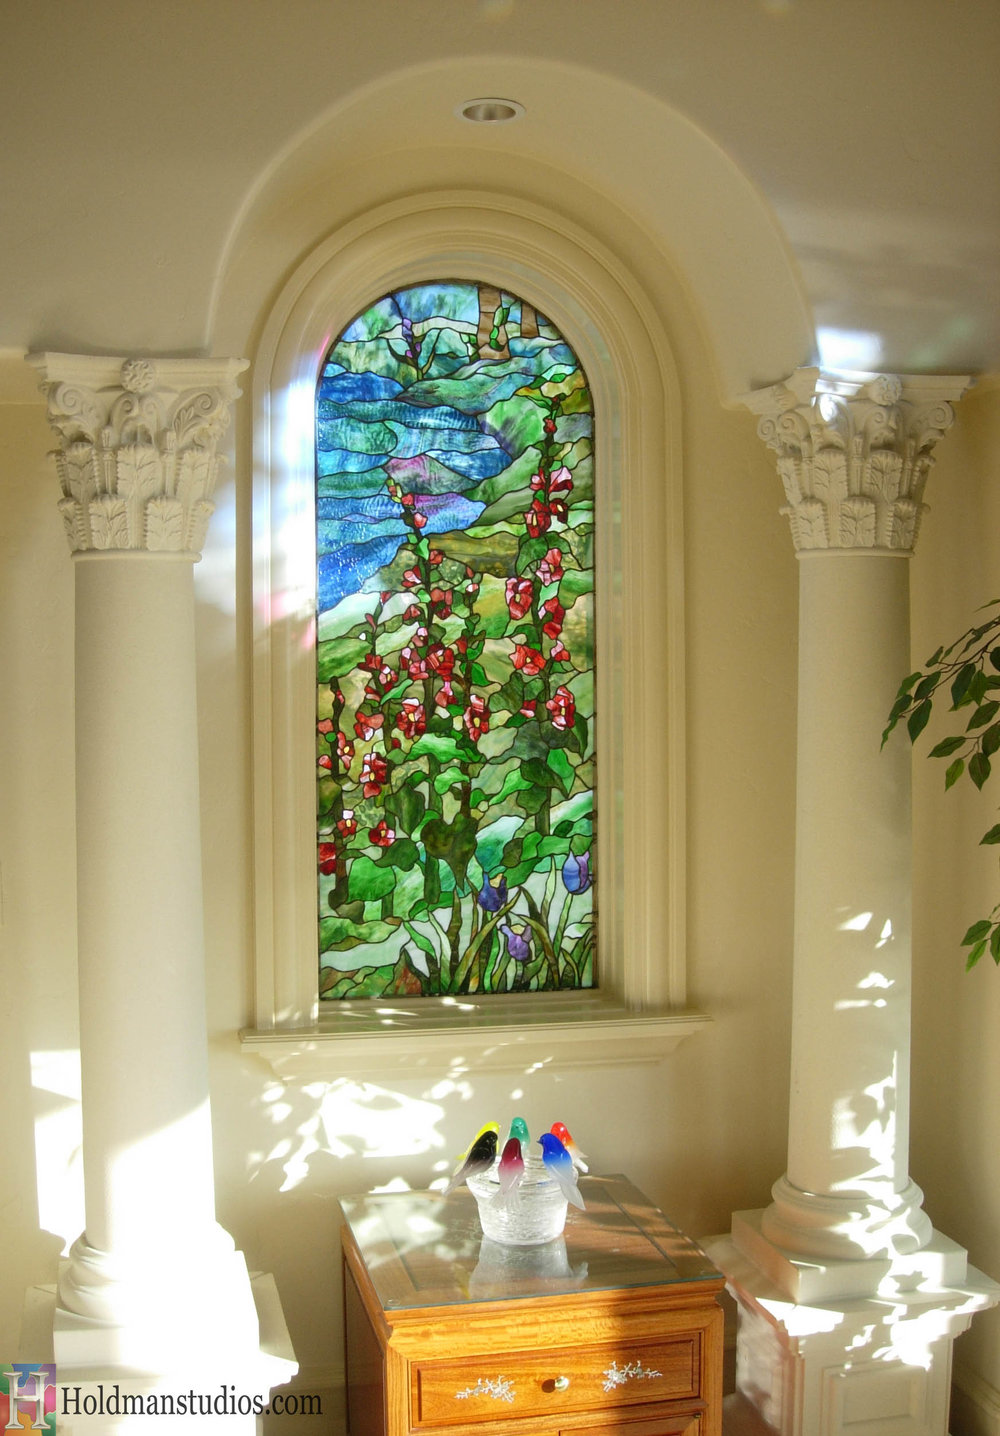 Stained Glass_Noni Mansion bedroom 2.jpg